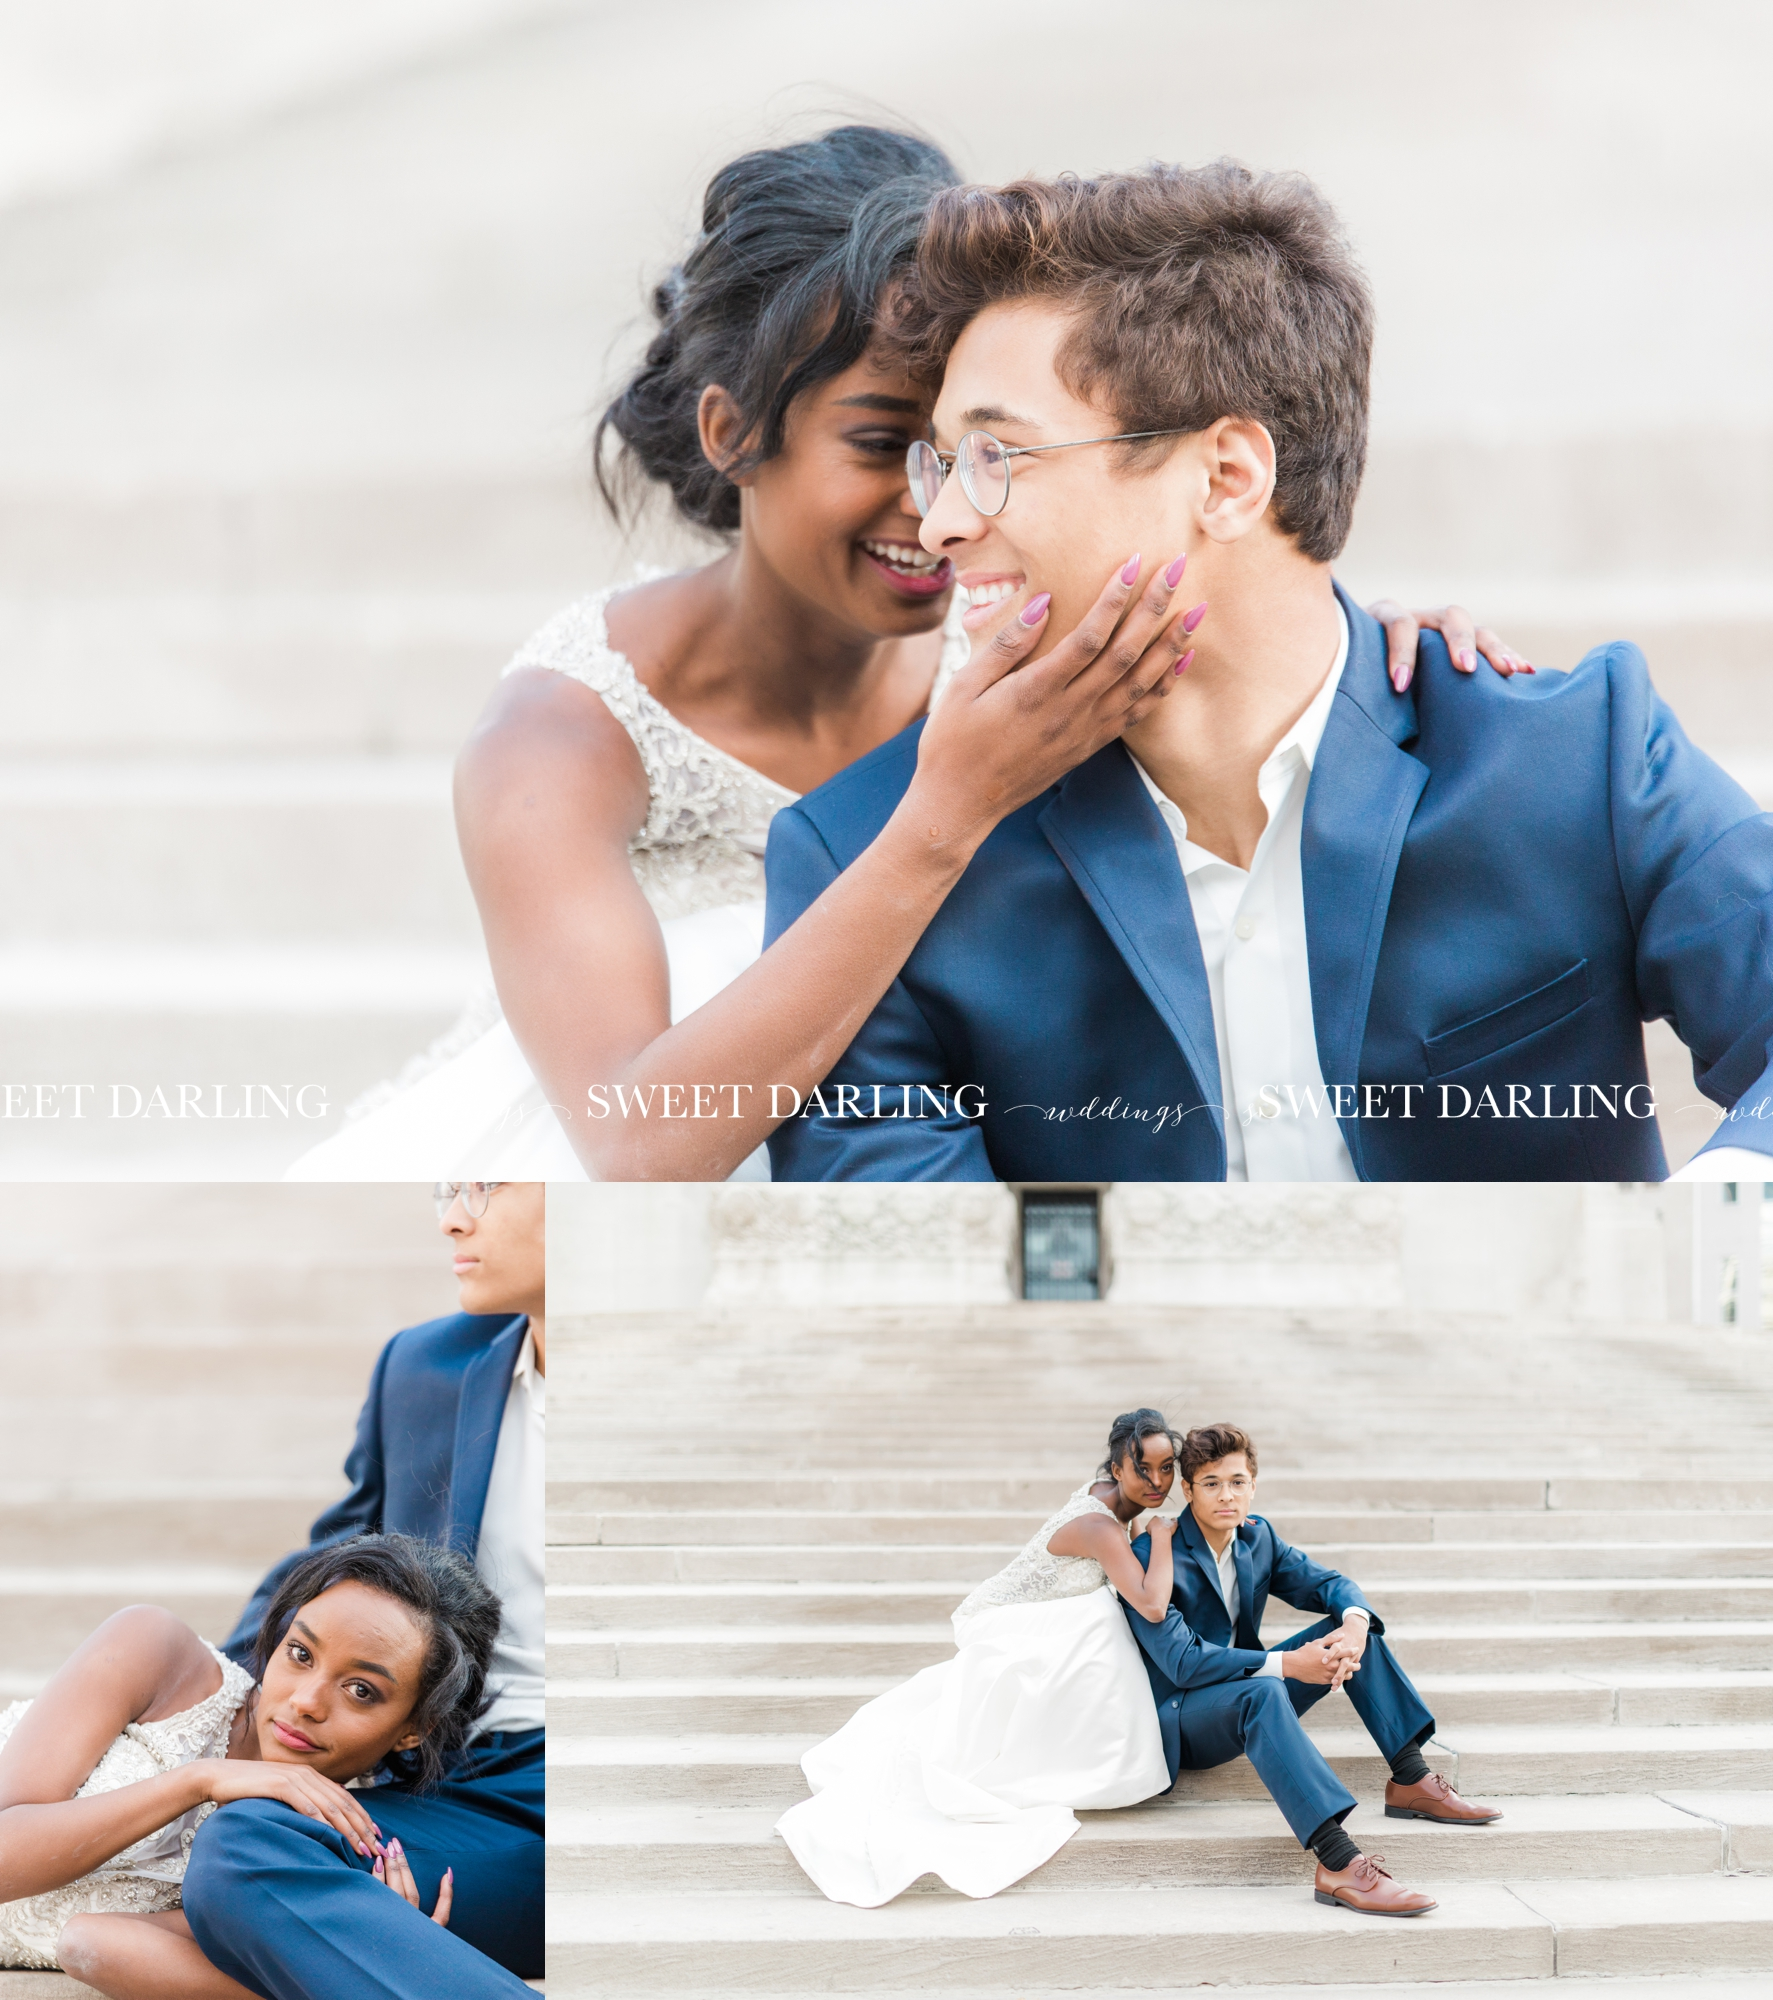 Indianapolis-Indiana-Wedding-photographer-urban-sweet-darling-champaign-IL_1491.jpg